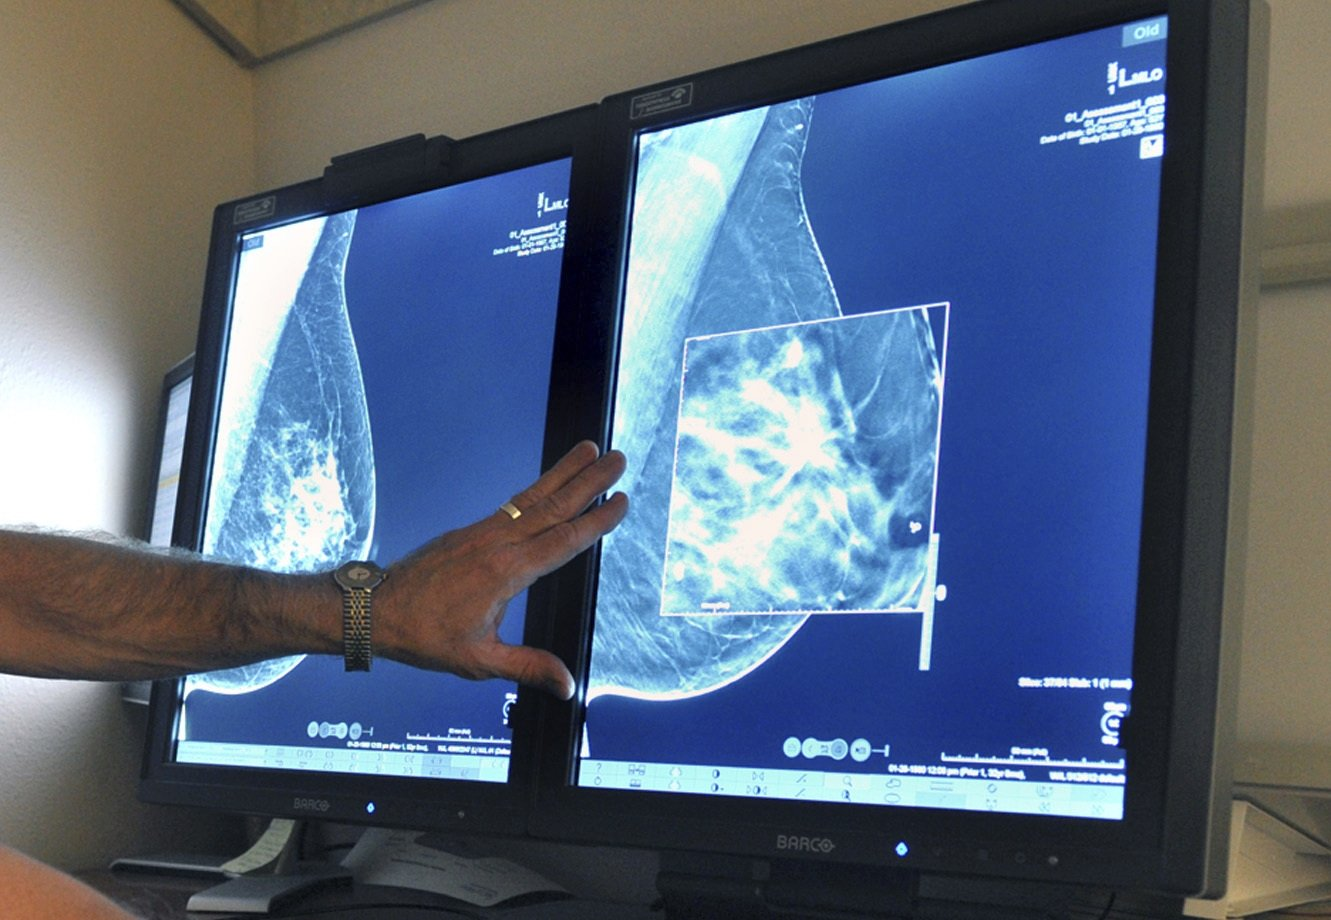 A radiologist compares an image from earlier, 2-D technology mammogram to the new 3-D Digital Breast Tomosynthesis mammography in Wichita Falls, Texas, July 31, 2012. (Times Record News via AP)